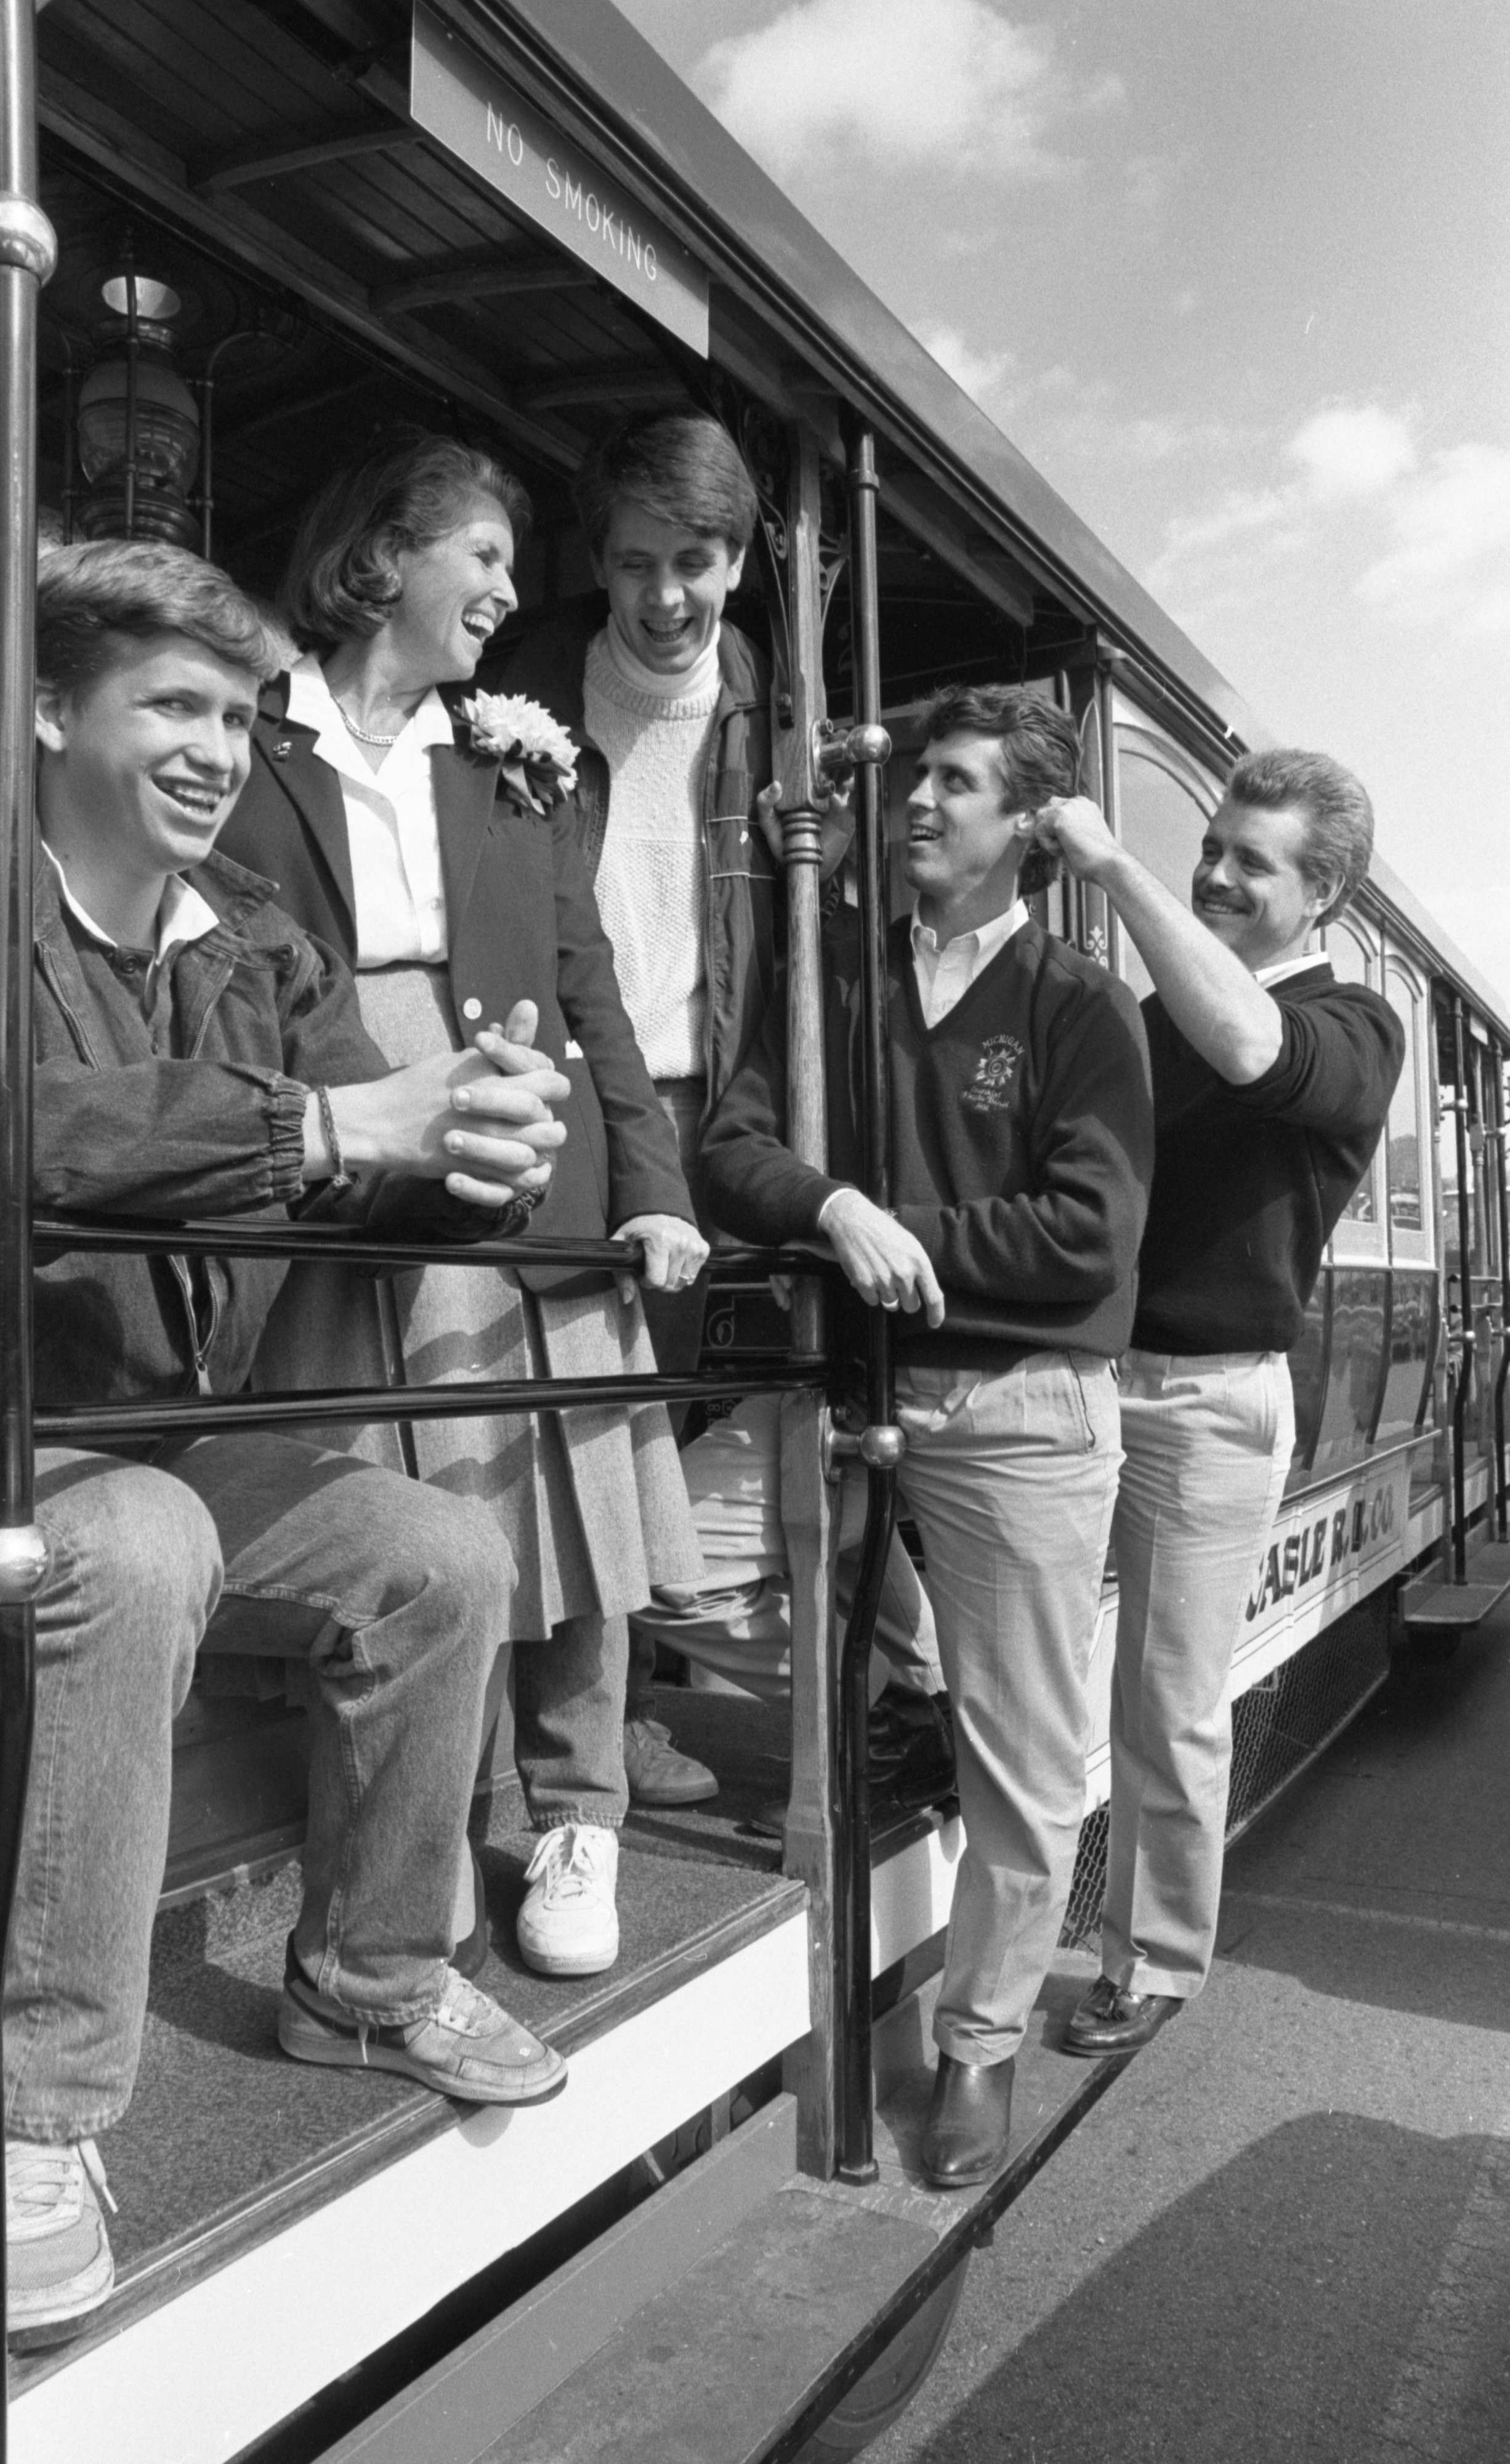 The Schembechler Family On A Cable Car, October 1986 image